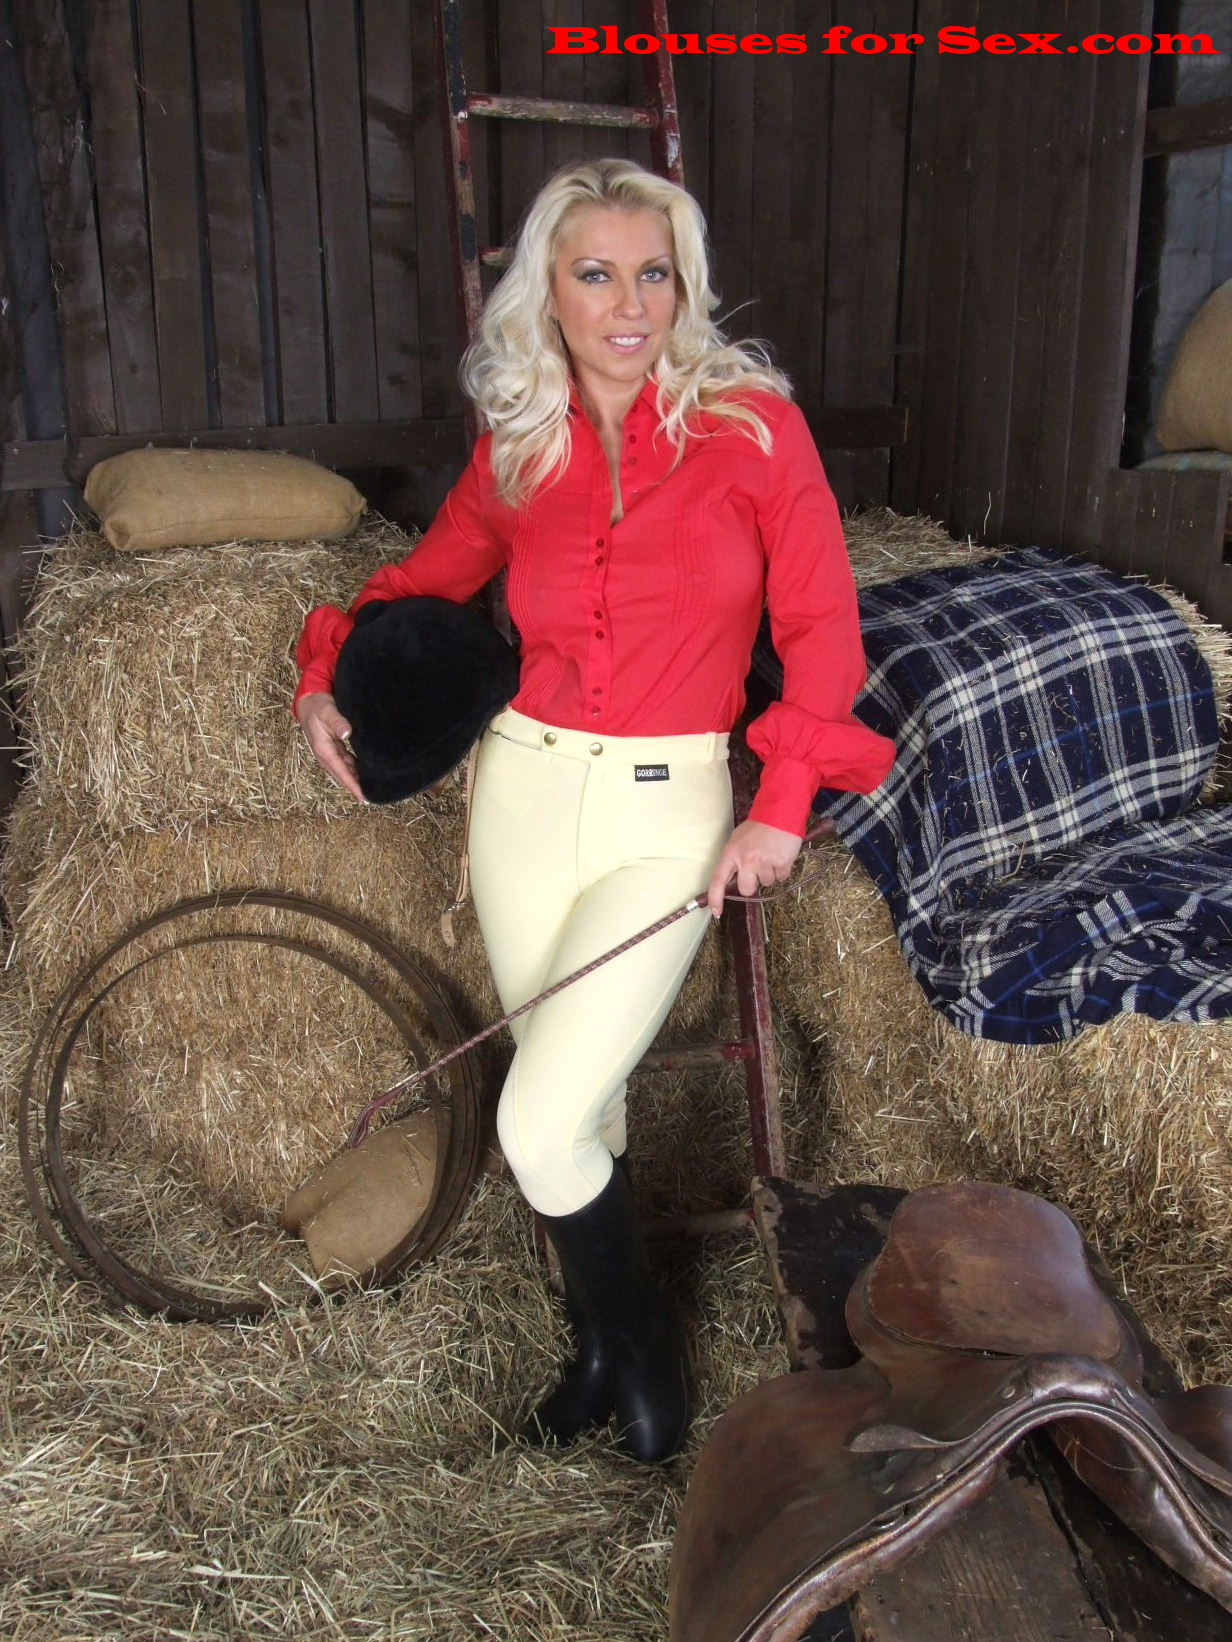 Blouse Feature: Equestriennes in Blouses